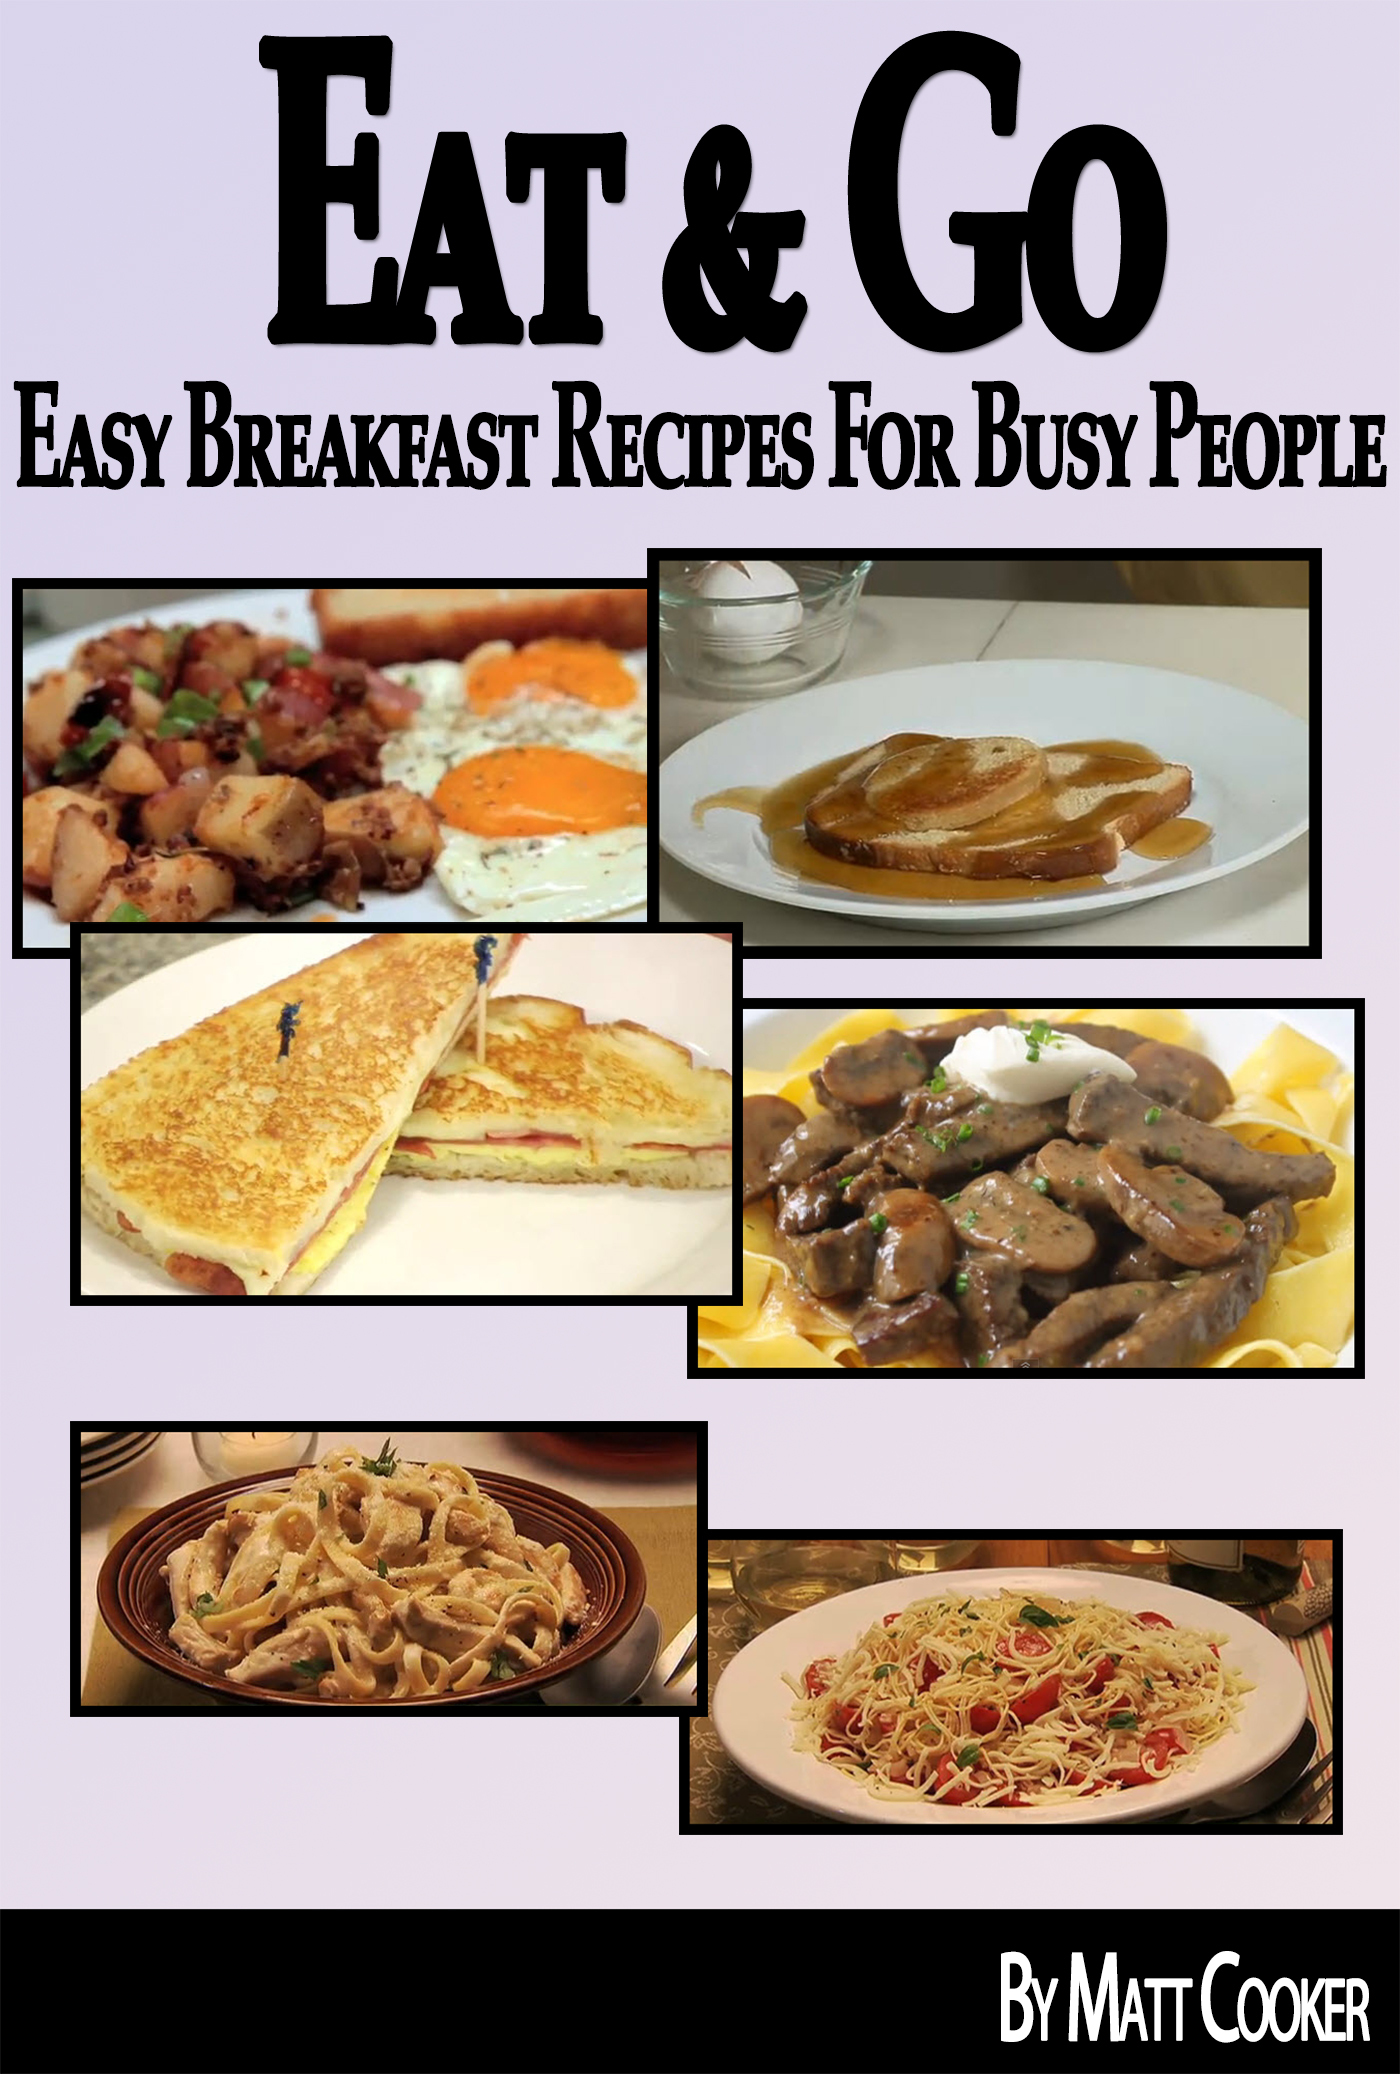 Eat & Go: Easy Breakfast Recipes For Busy People